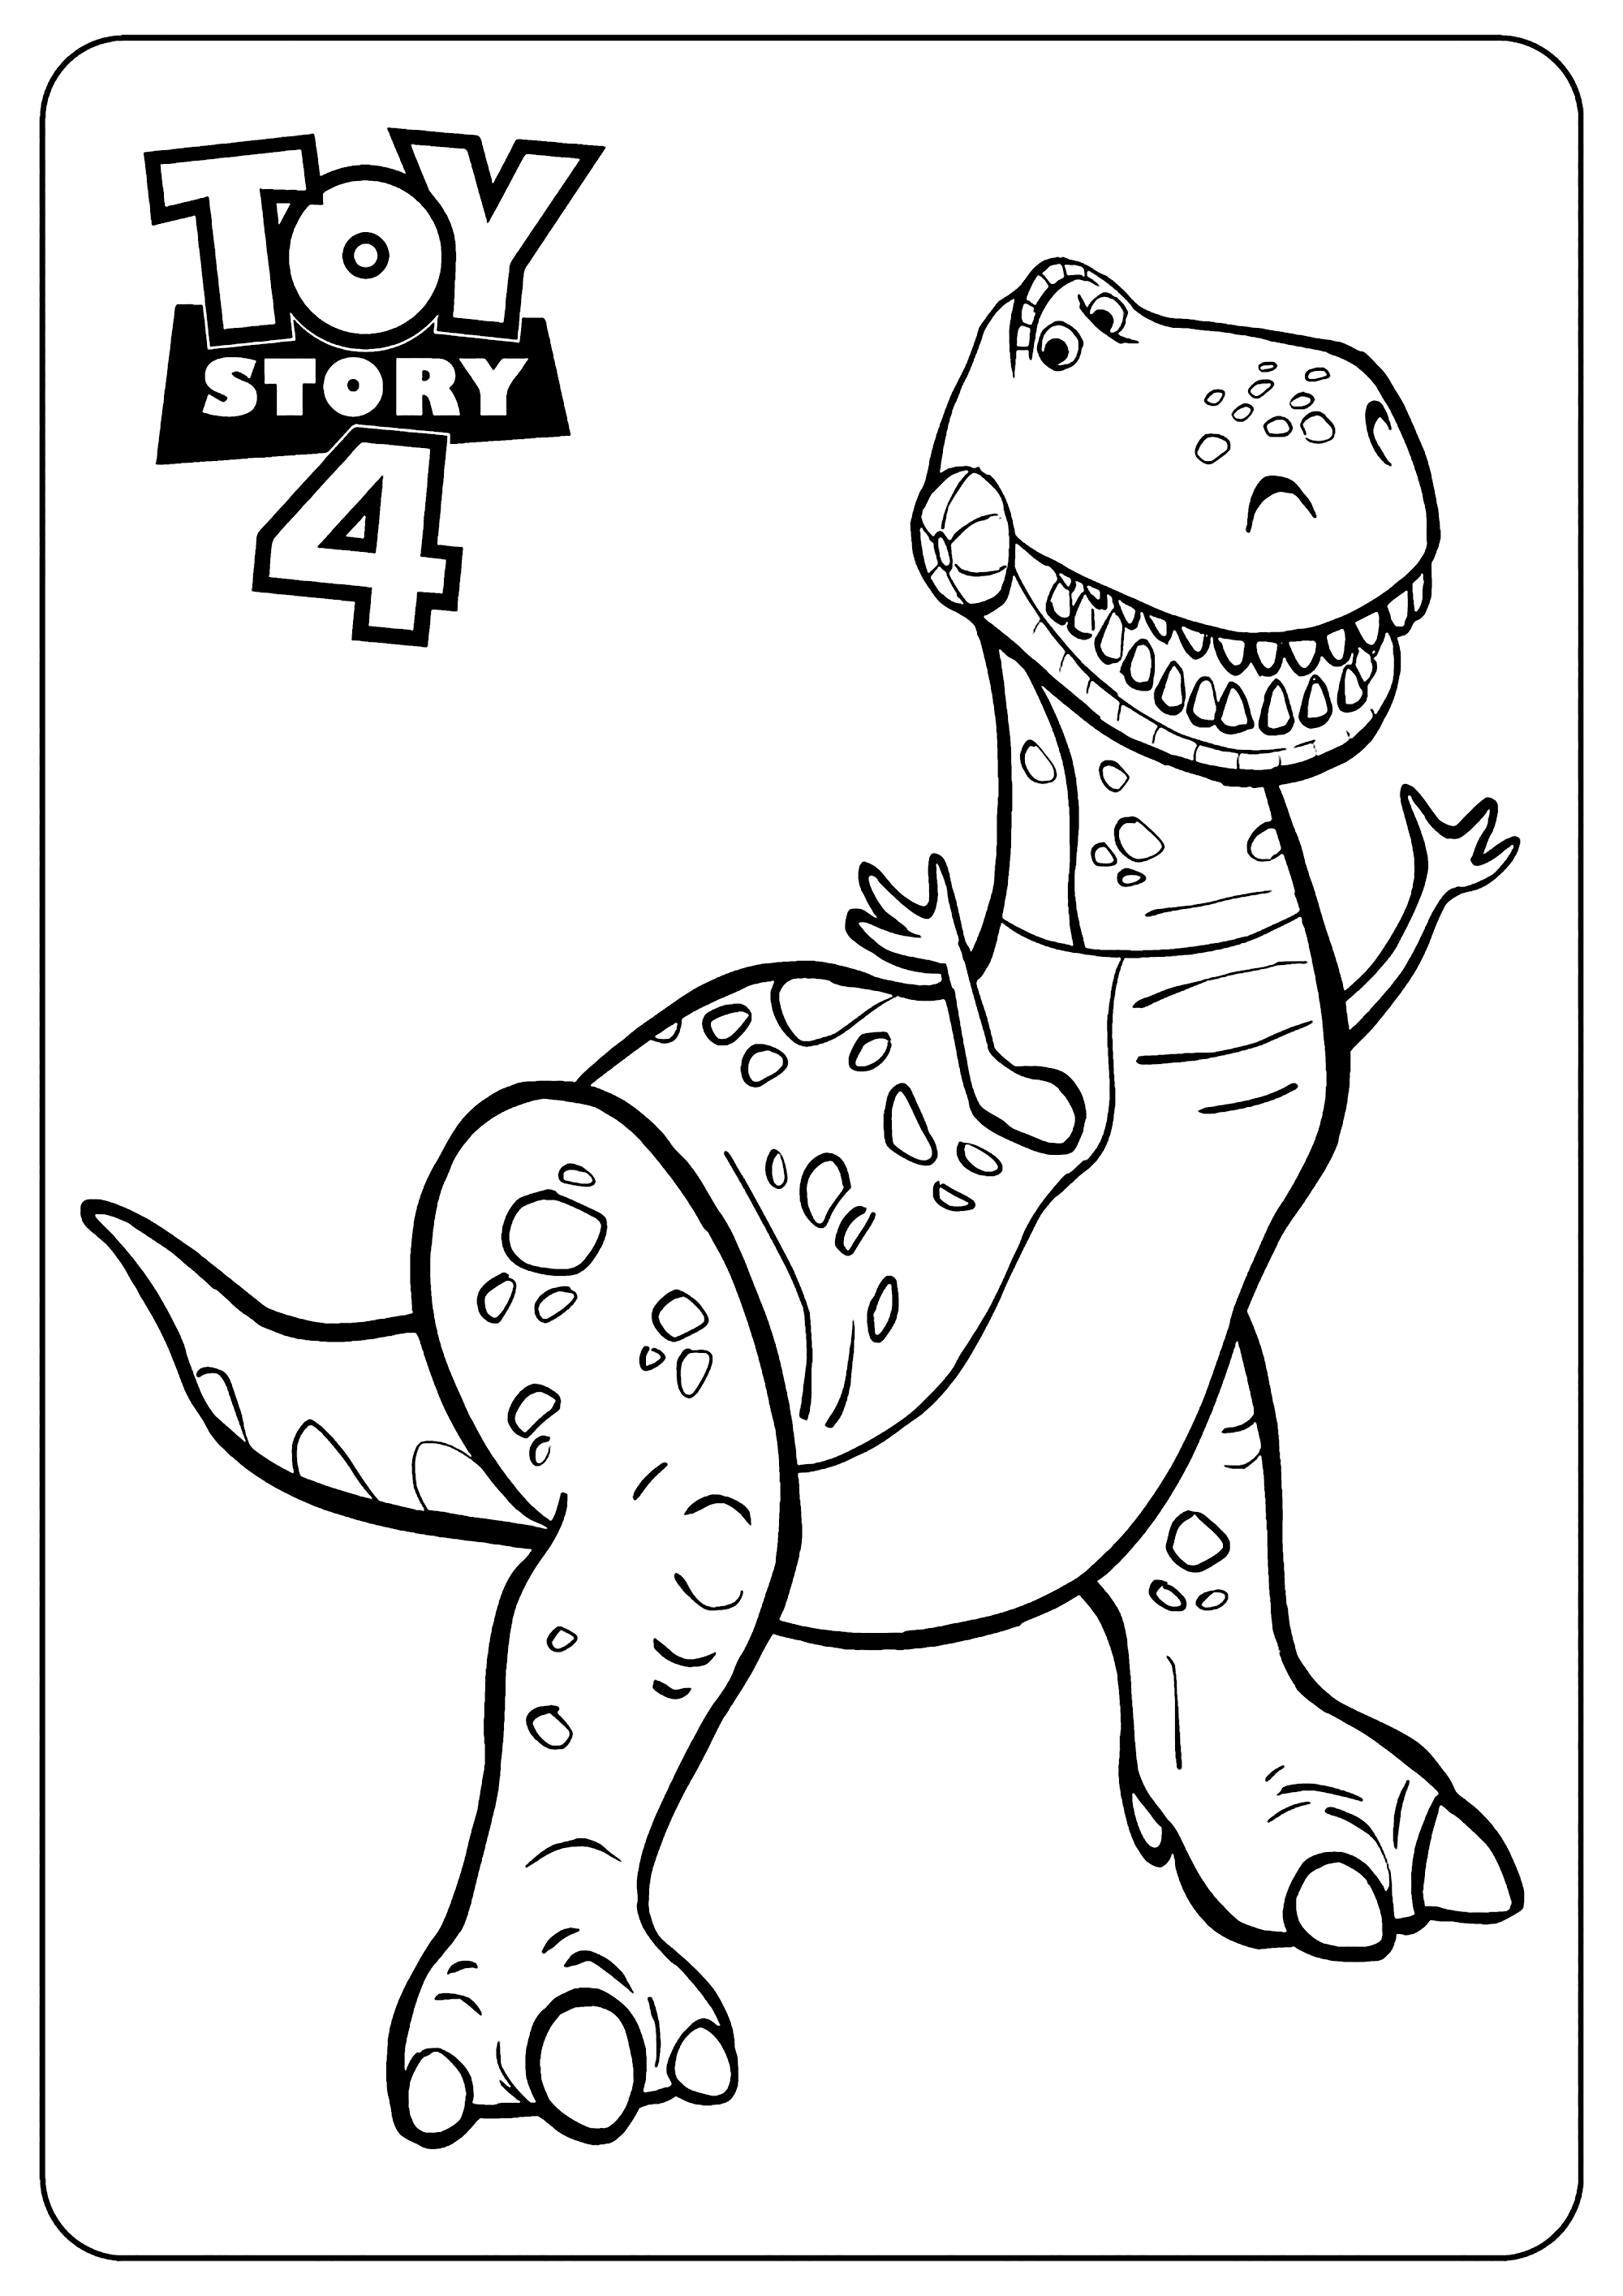 toy story 4 coloring 18 free printable toy story 4 coloring pages 1nza story toy coloring 4